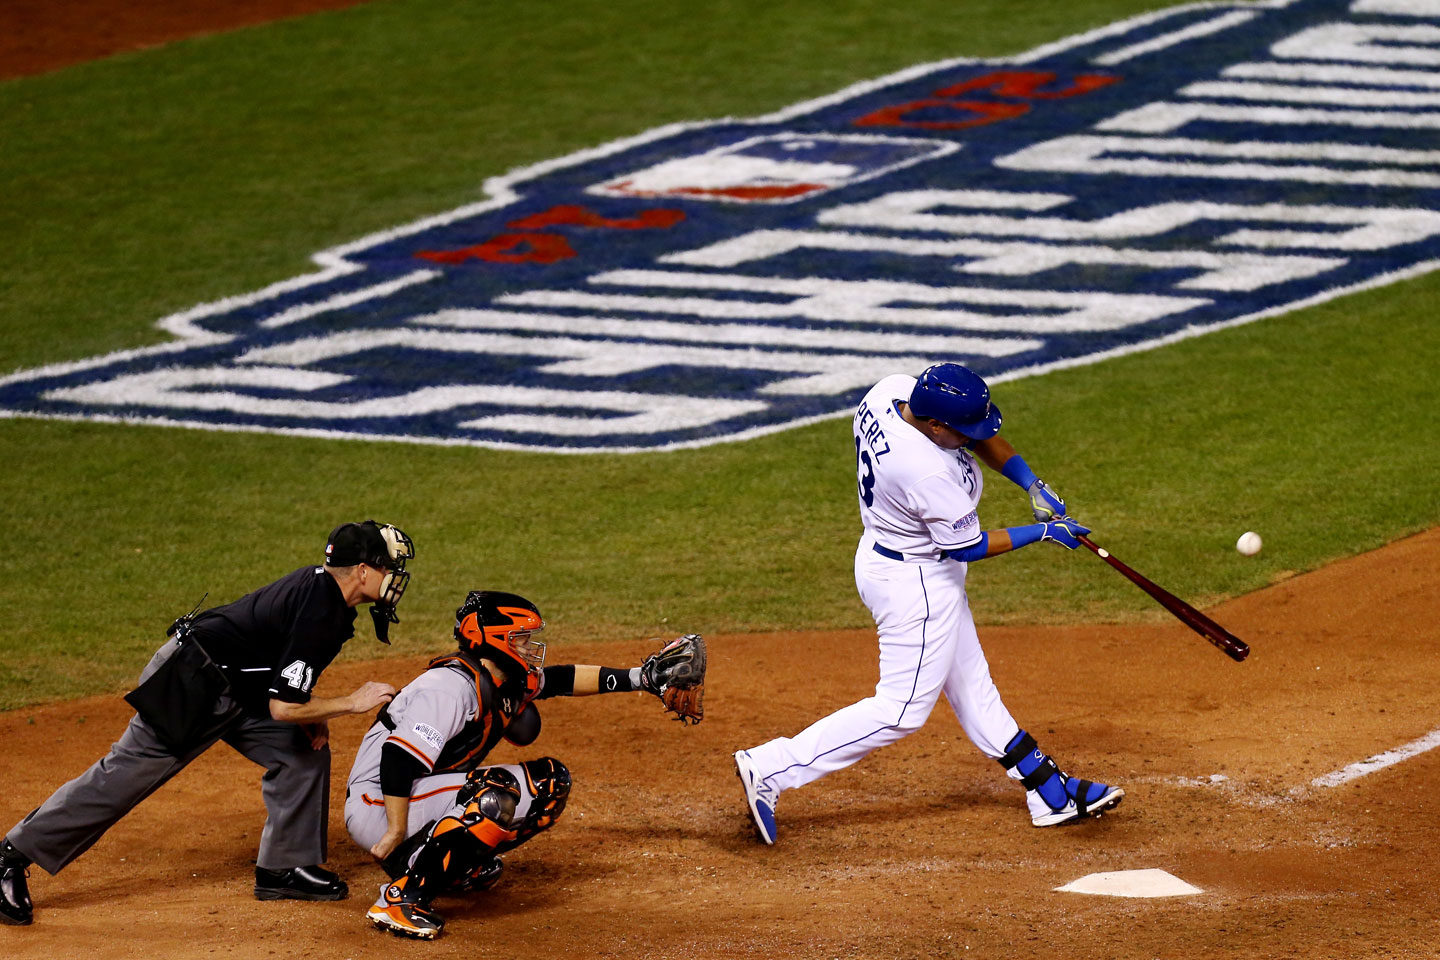 oyals catcher Salvador Perez hits a solo home run in the bottom of the seventh. The homer ends two impressive streaks for Madison Bumgarner: 21 scoreless innings in the World Series, and 32 2/3 scoreless innings in postseason play on the road -- that second streak being a major league record. Score now Giants 7, Royals 1. (Ed Zurga/Getty Images)